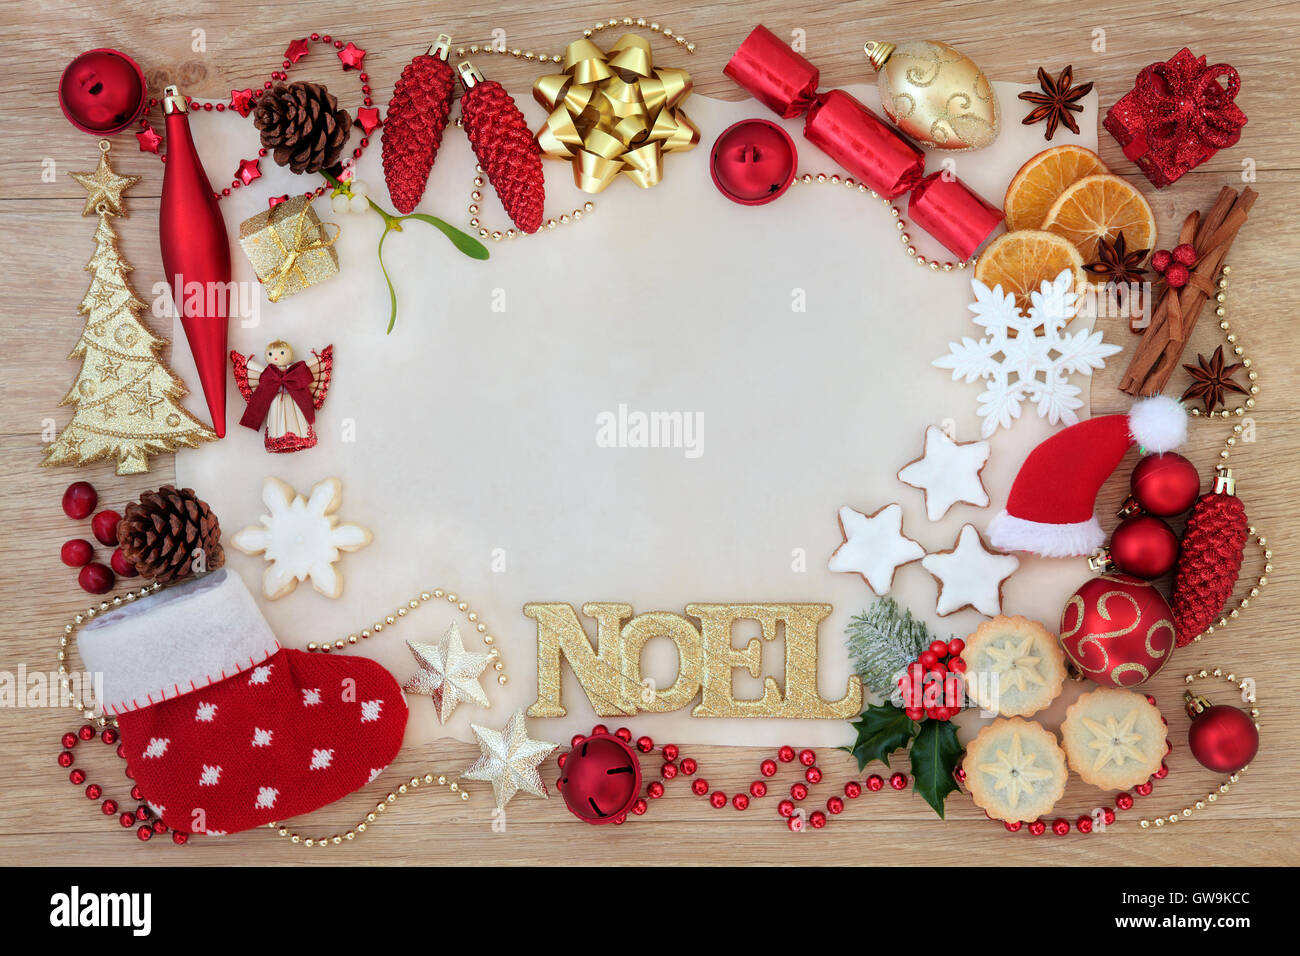 Decoration Biscuit Noel.Christmas Abstract Background Border With Noel Sign Tree